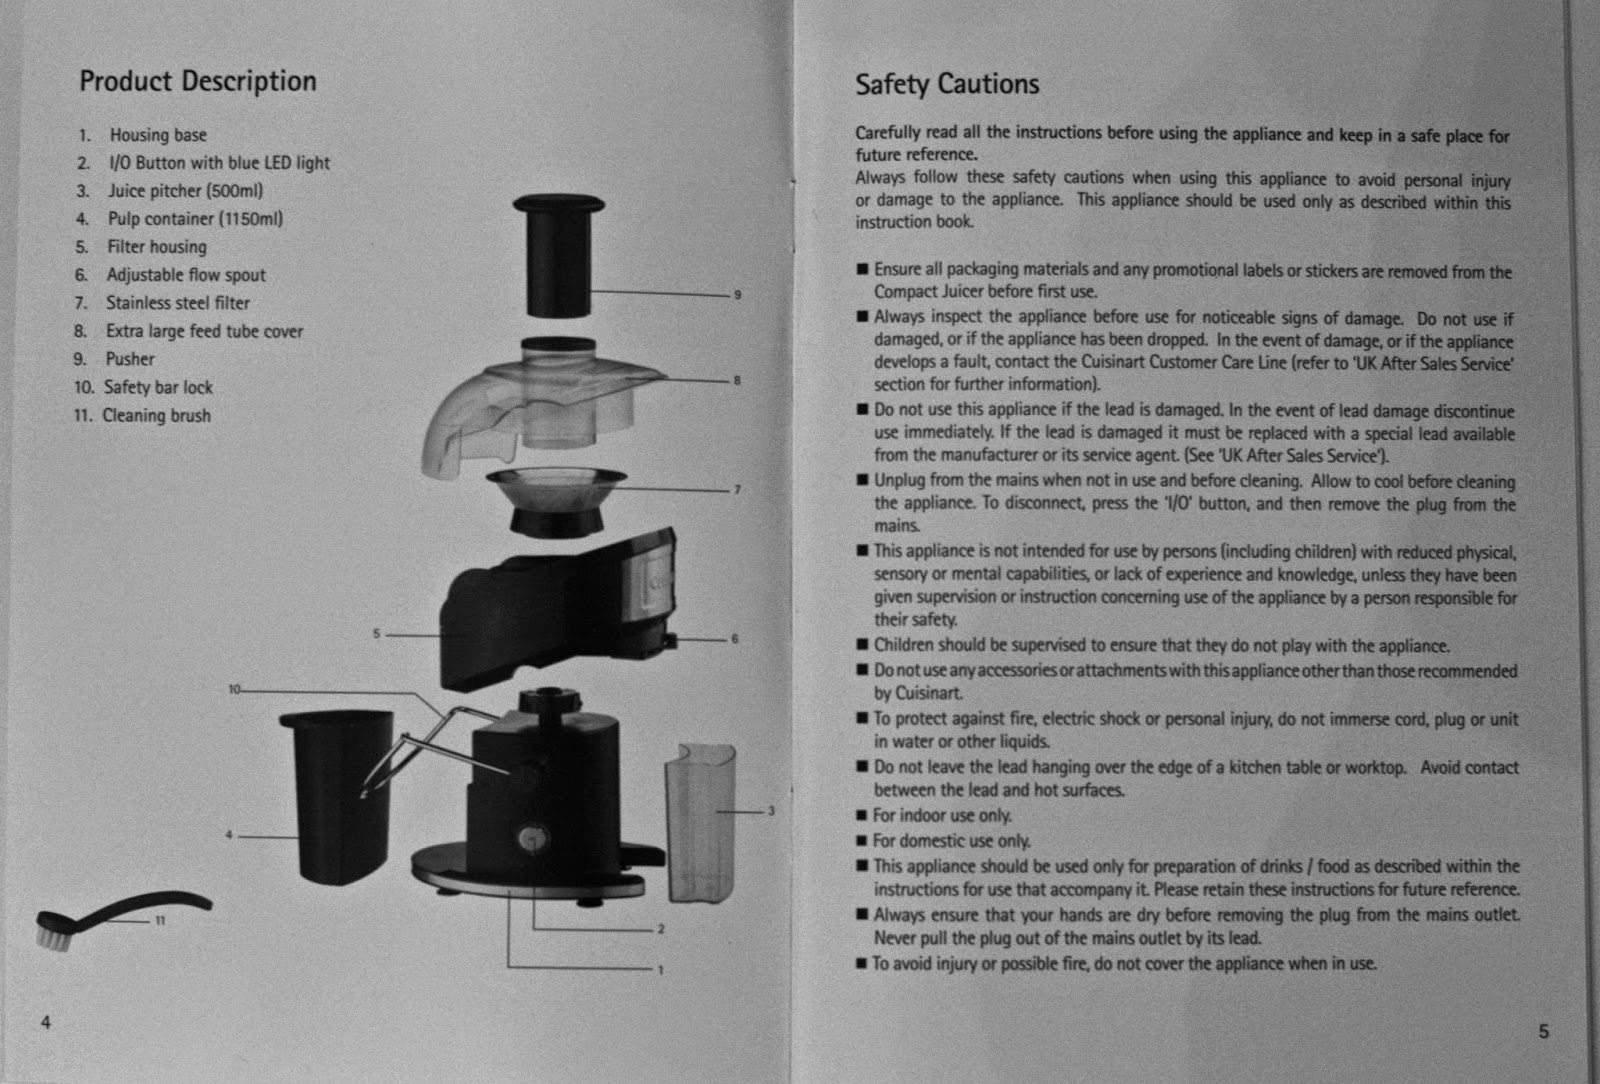 Cuisinart Compact Juicer's parts and safety cautions